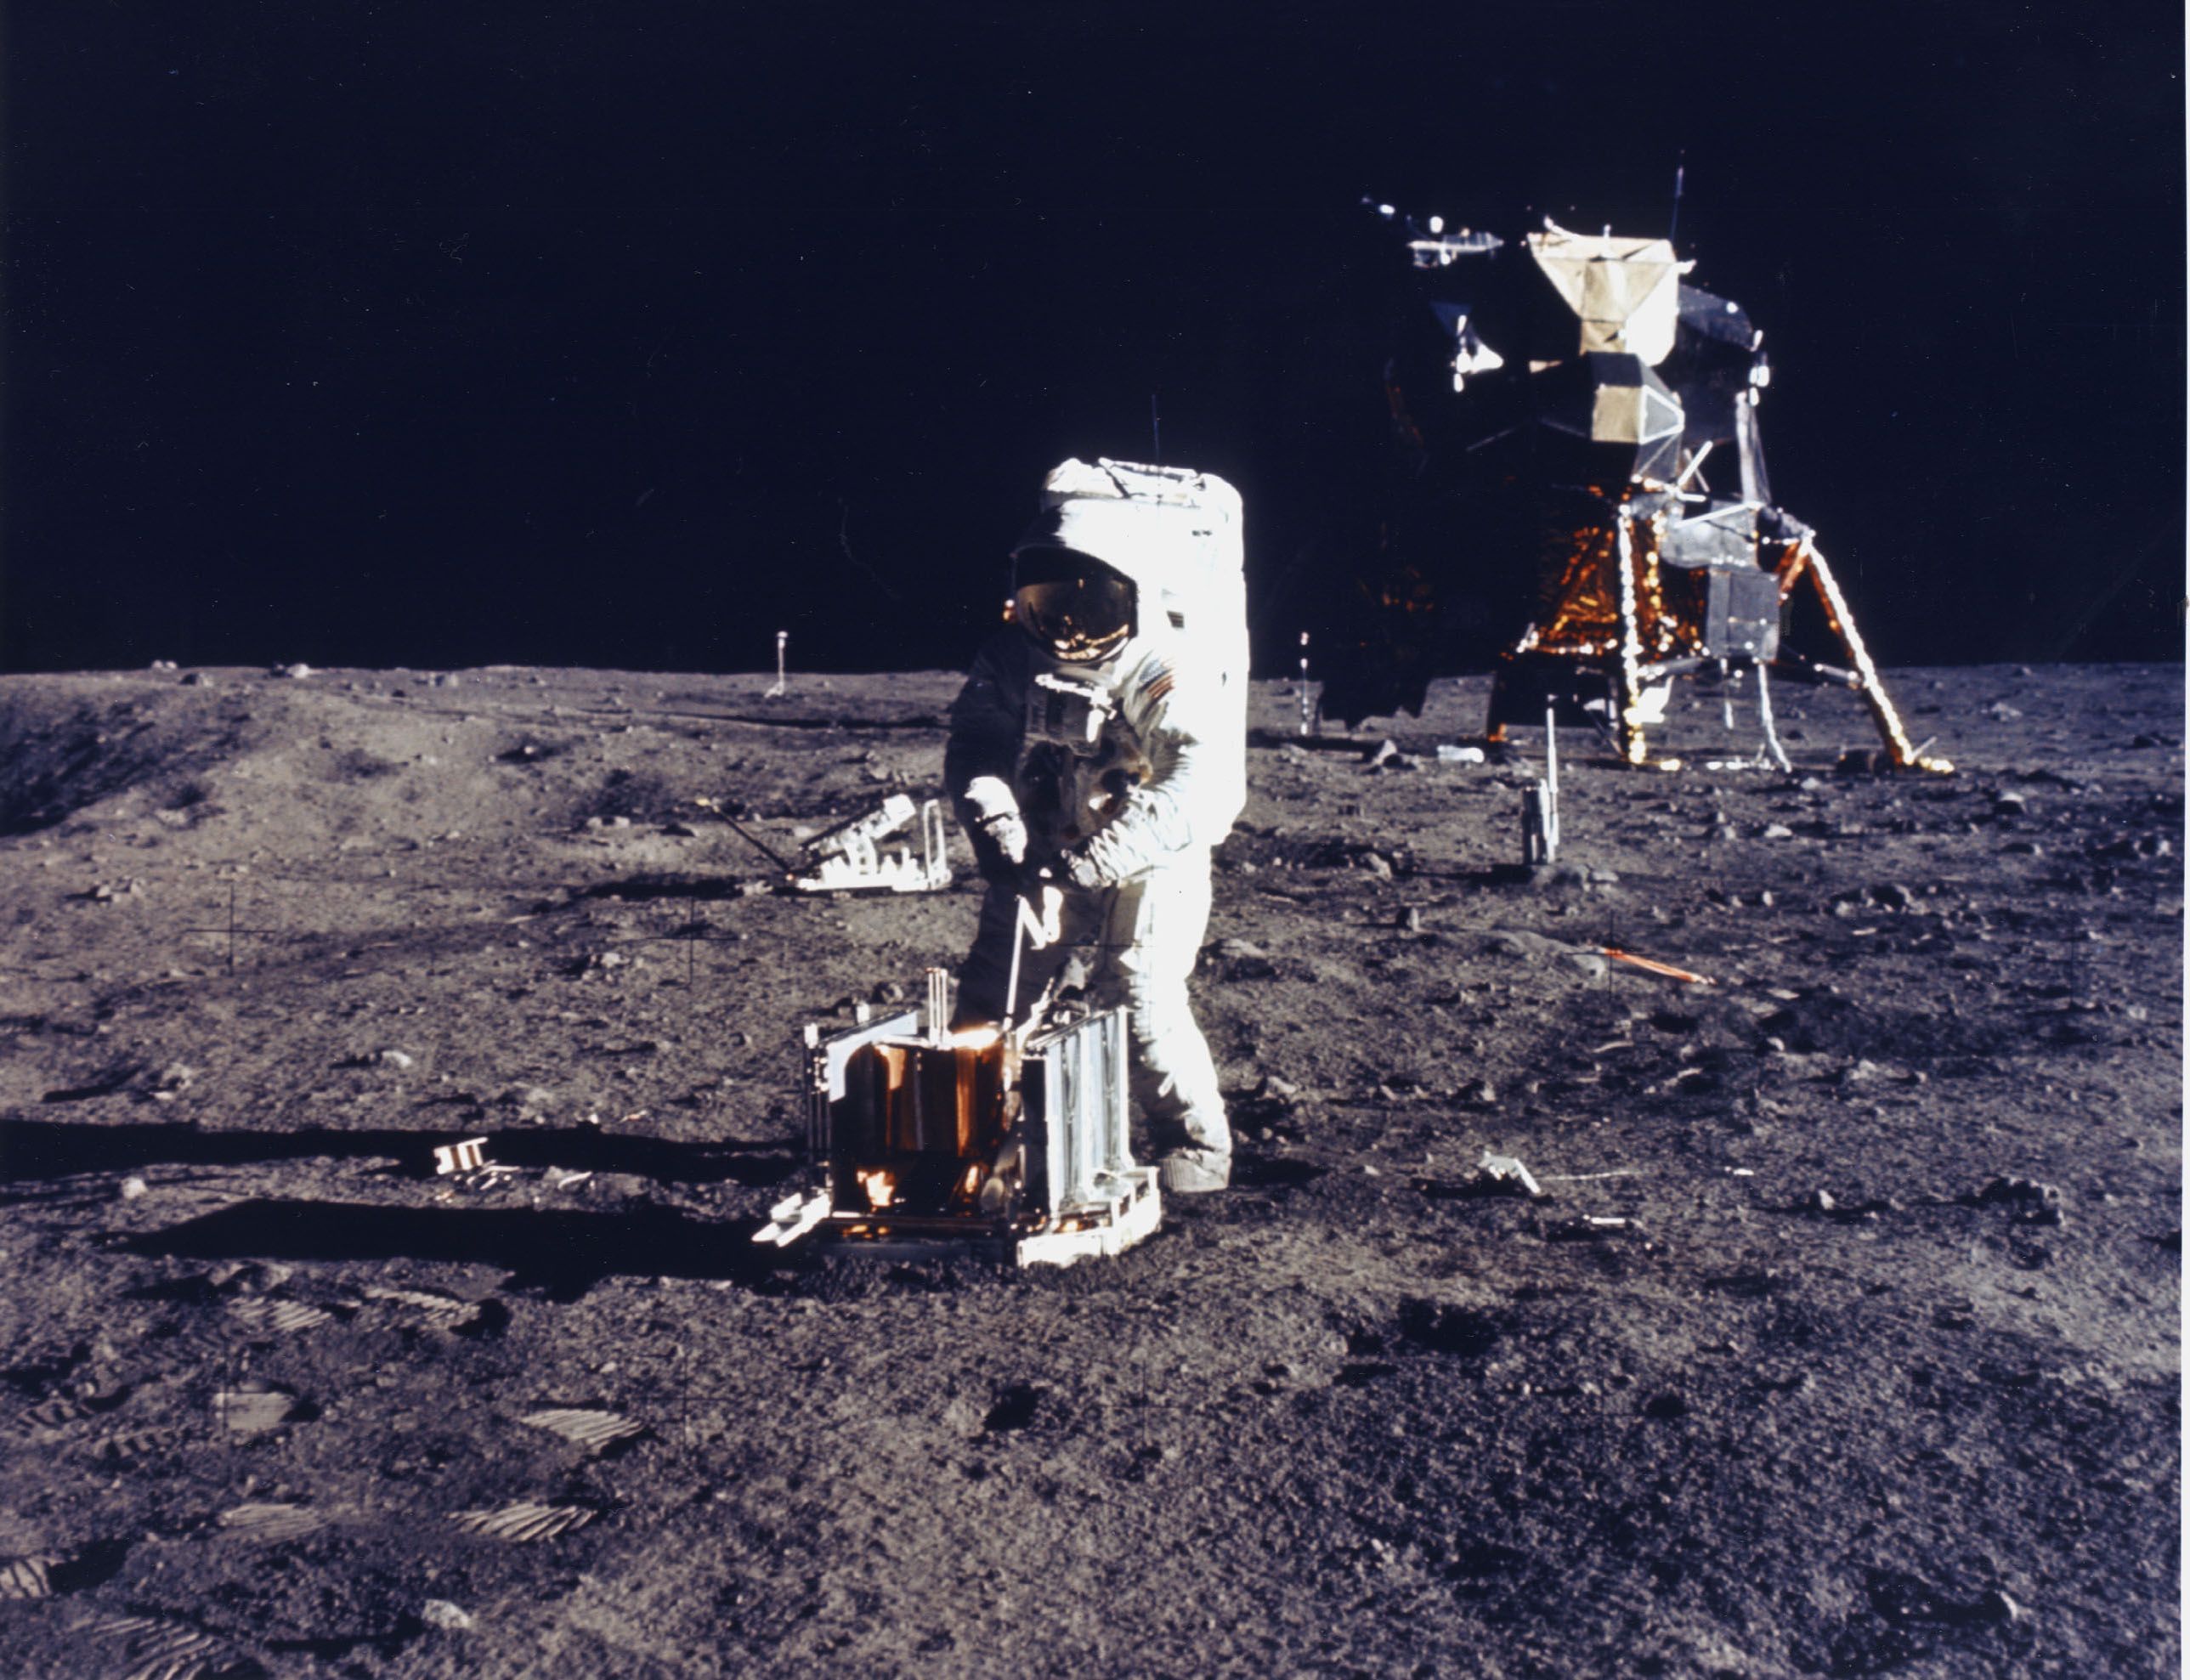 the space race and apollo 11 The race was over by point, america had won with apollo 11 and the soviets were focused on space stations apollo 13 might have contributed in some way to cutting the last two flights from apollo (18 and 19.